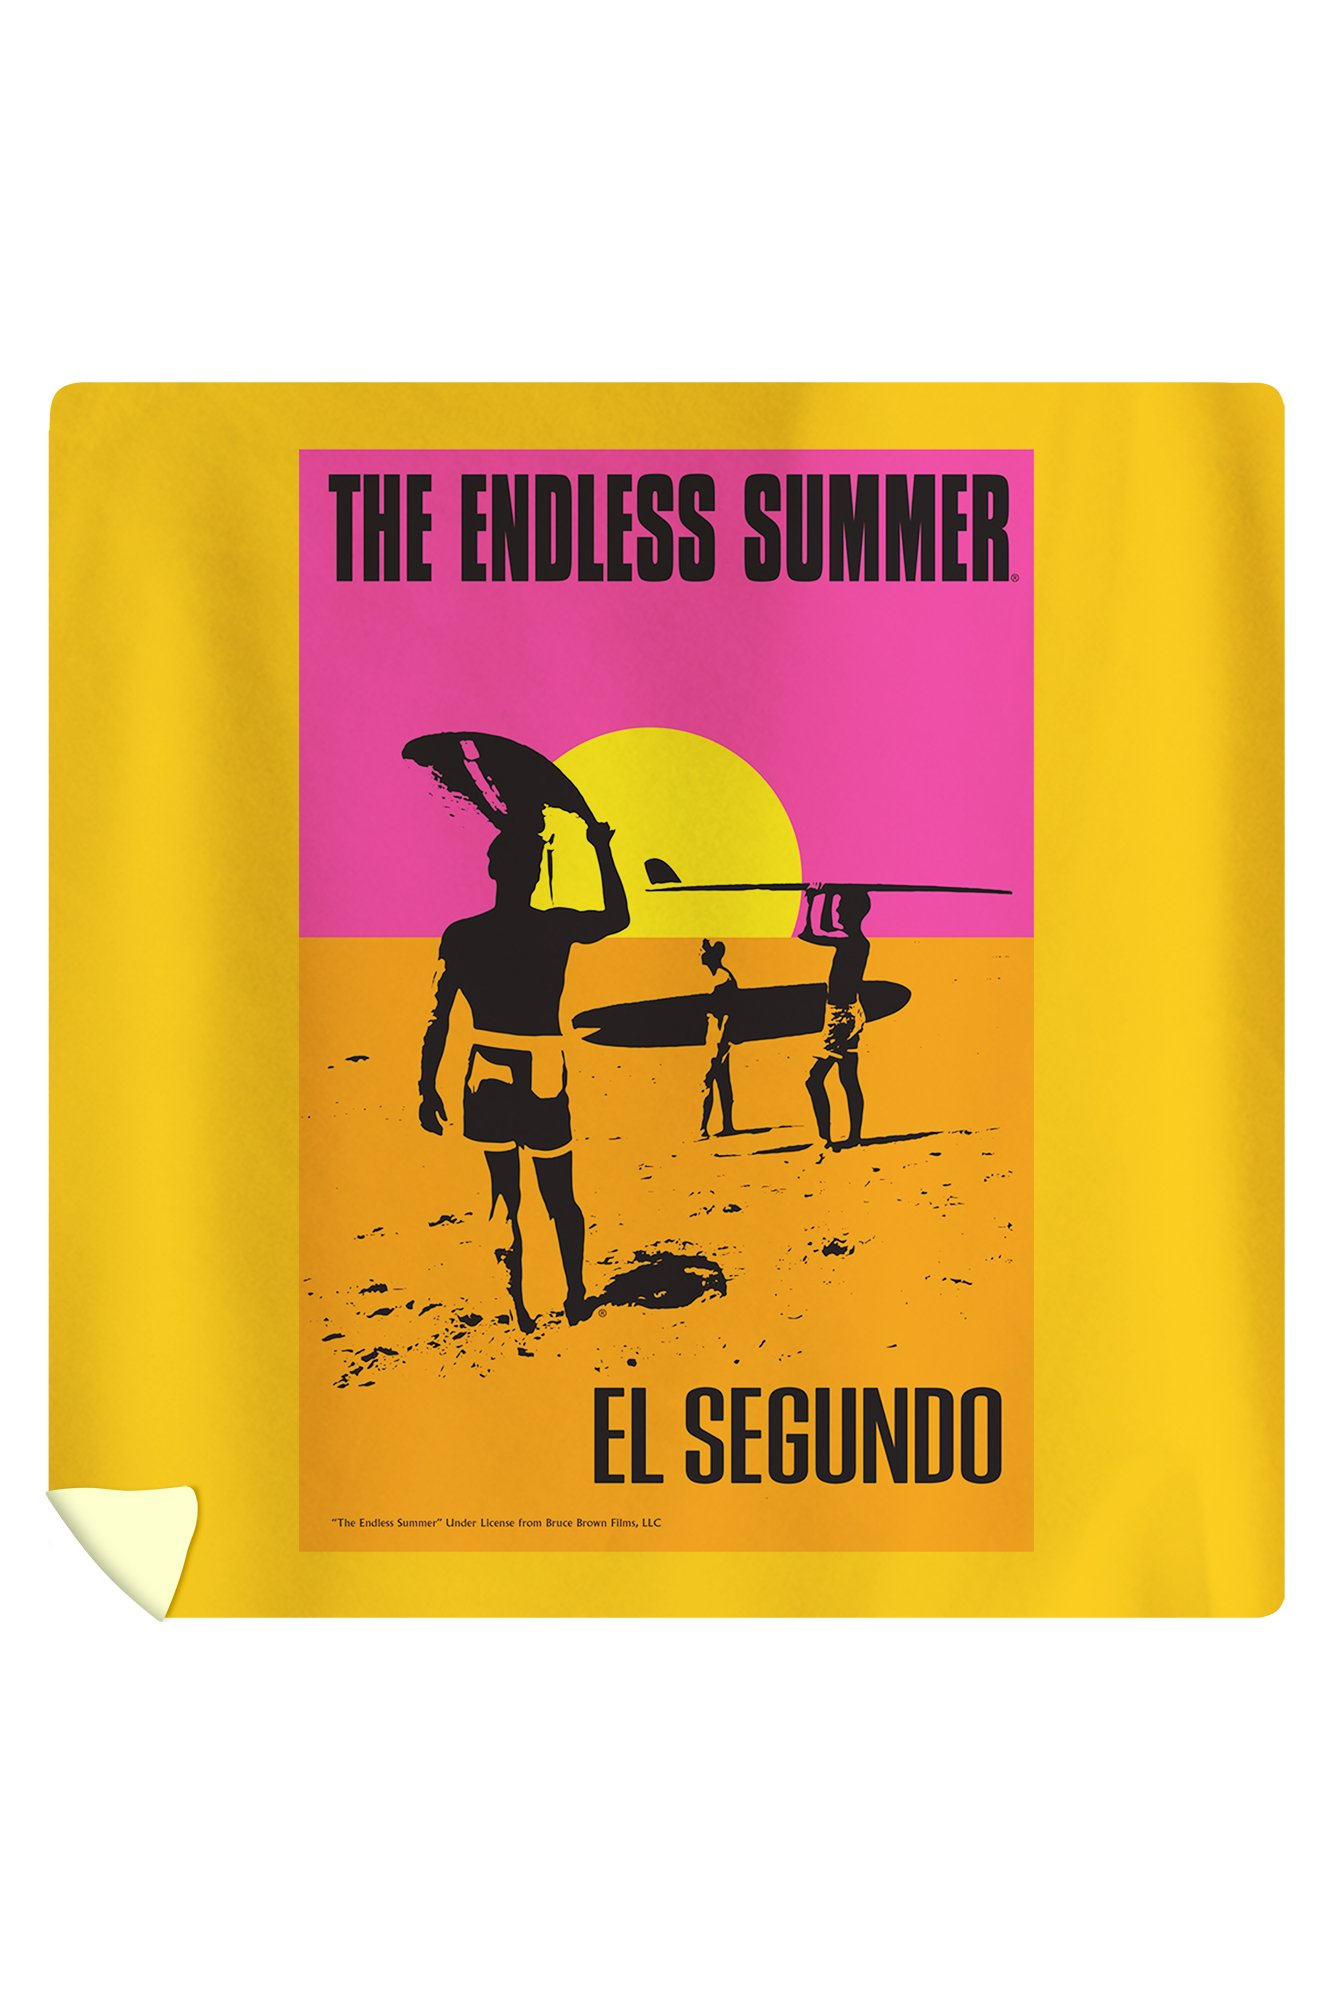 El Segundo, California - The Endless Summer - Original Movie Poster (88x88 Queen Microfiber Duvet Cover)